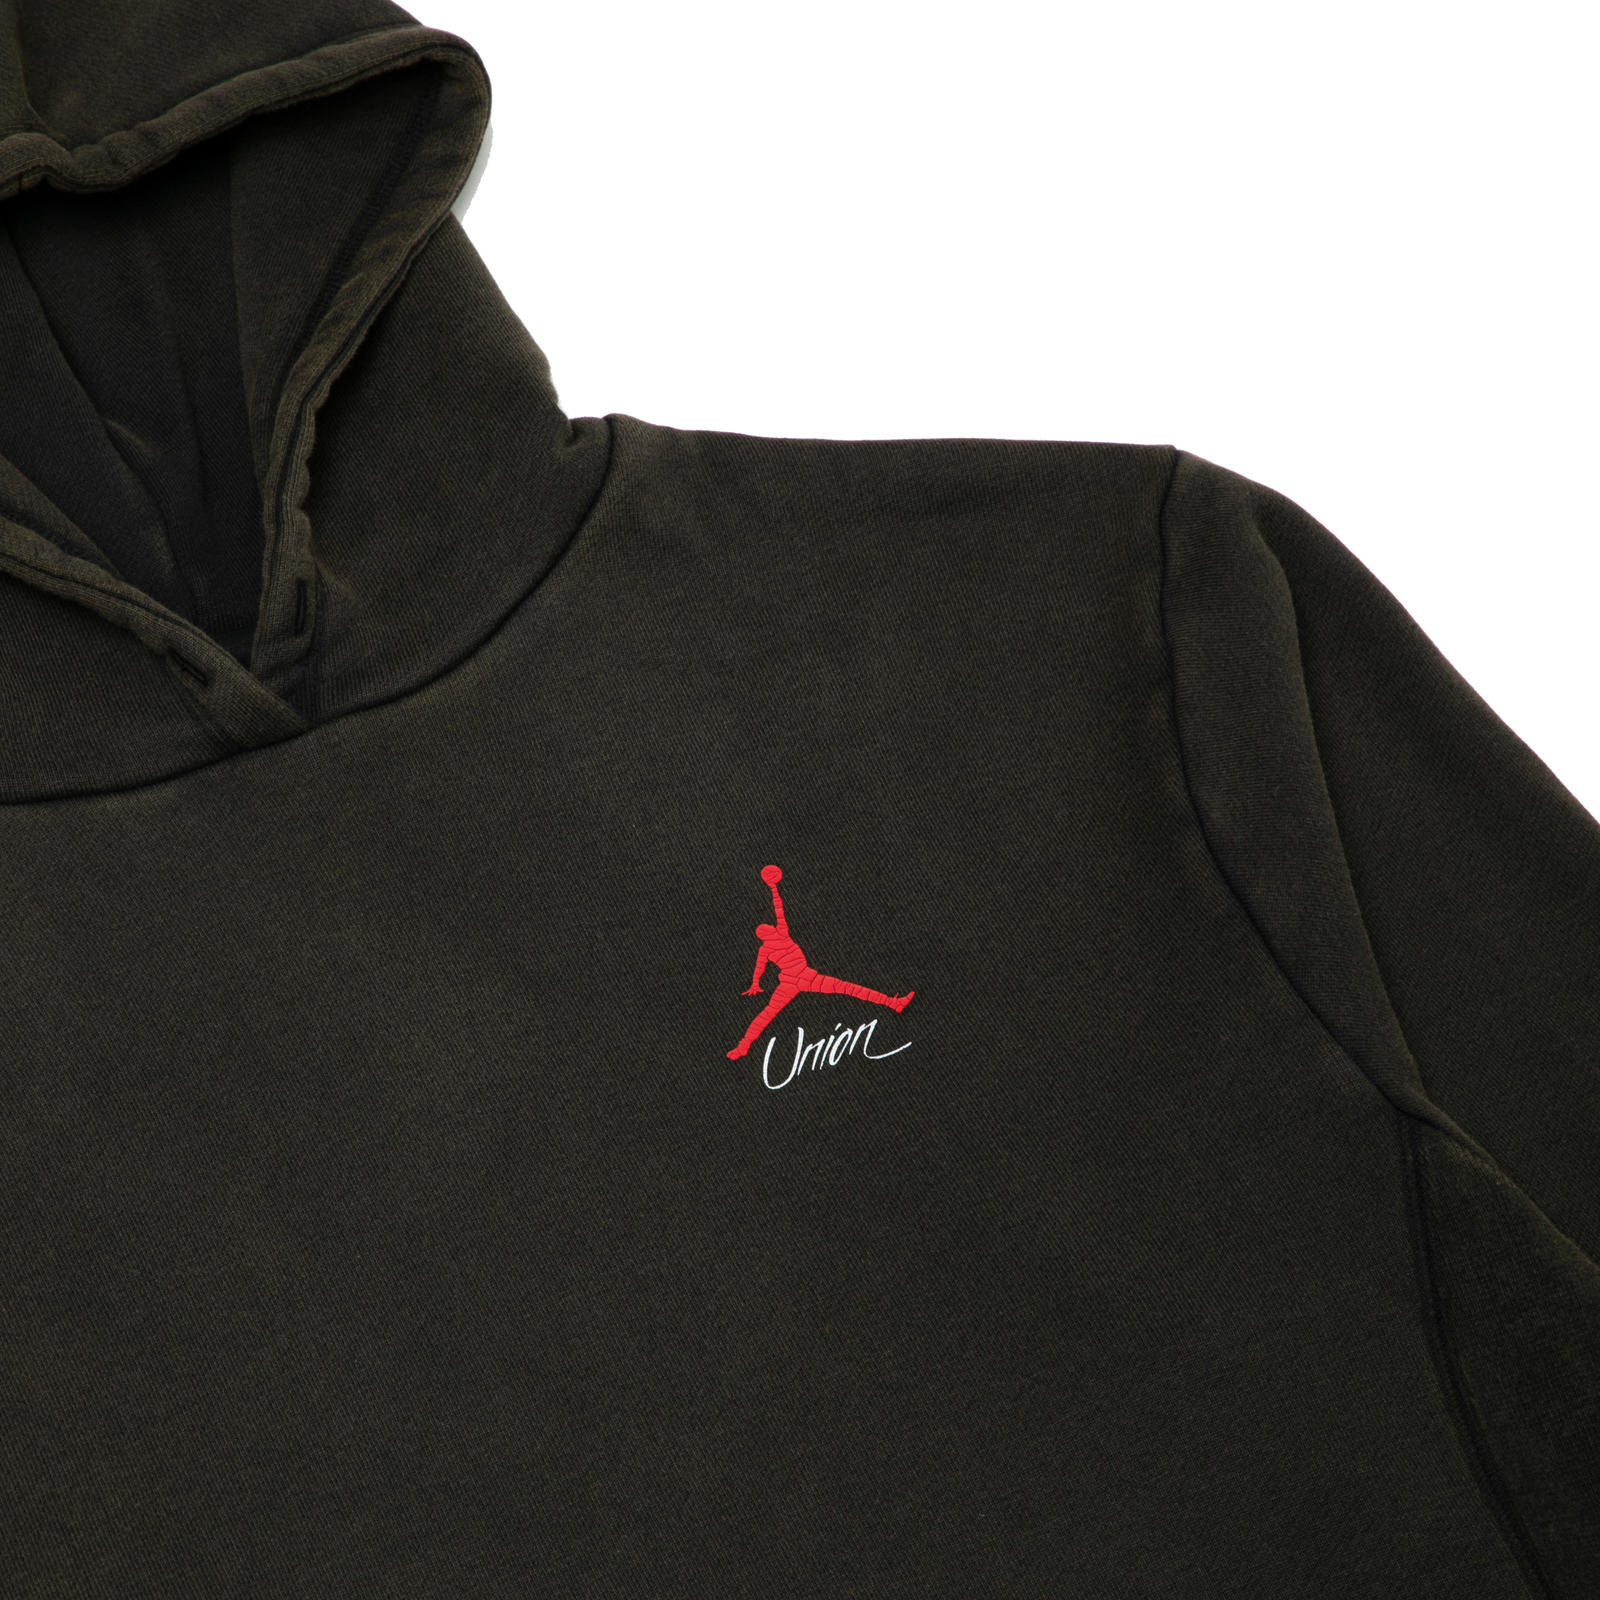 ef81f44b77311b Union x Air Jordan Capsule Celebrates an Era of Jordan s Impact on  Streetwear 52